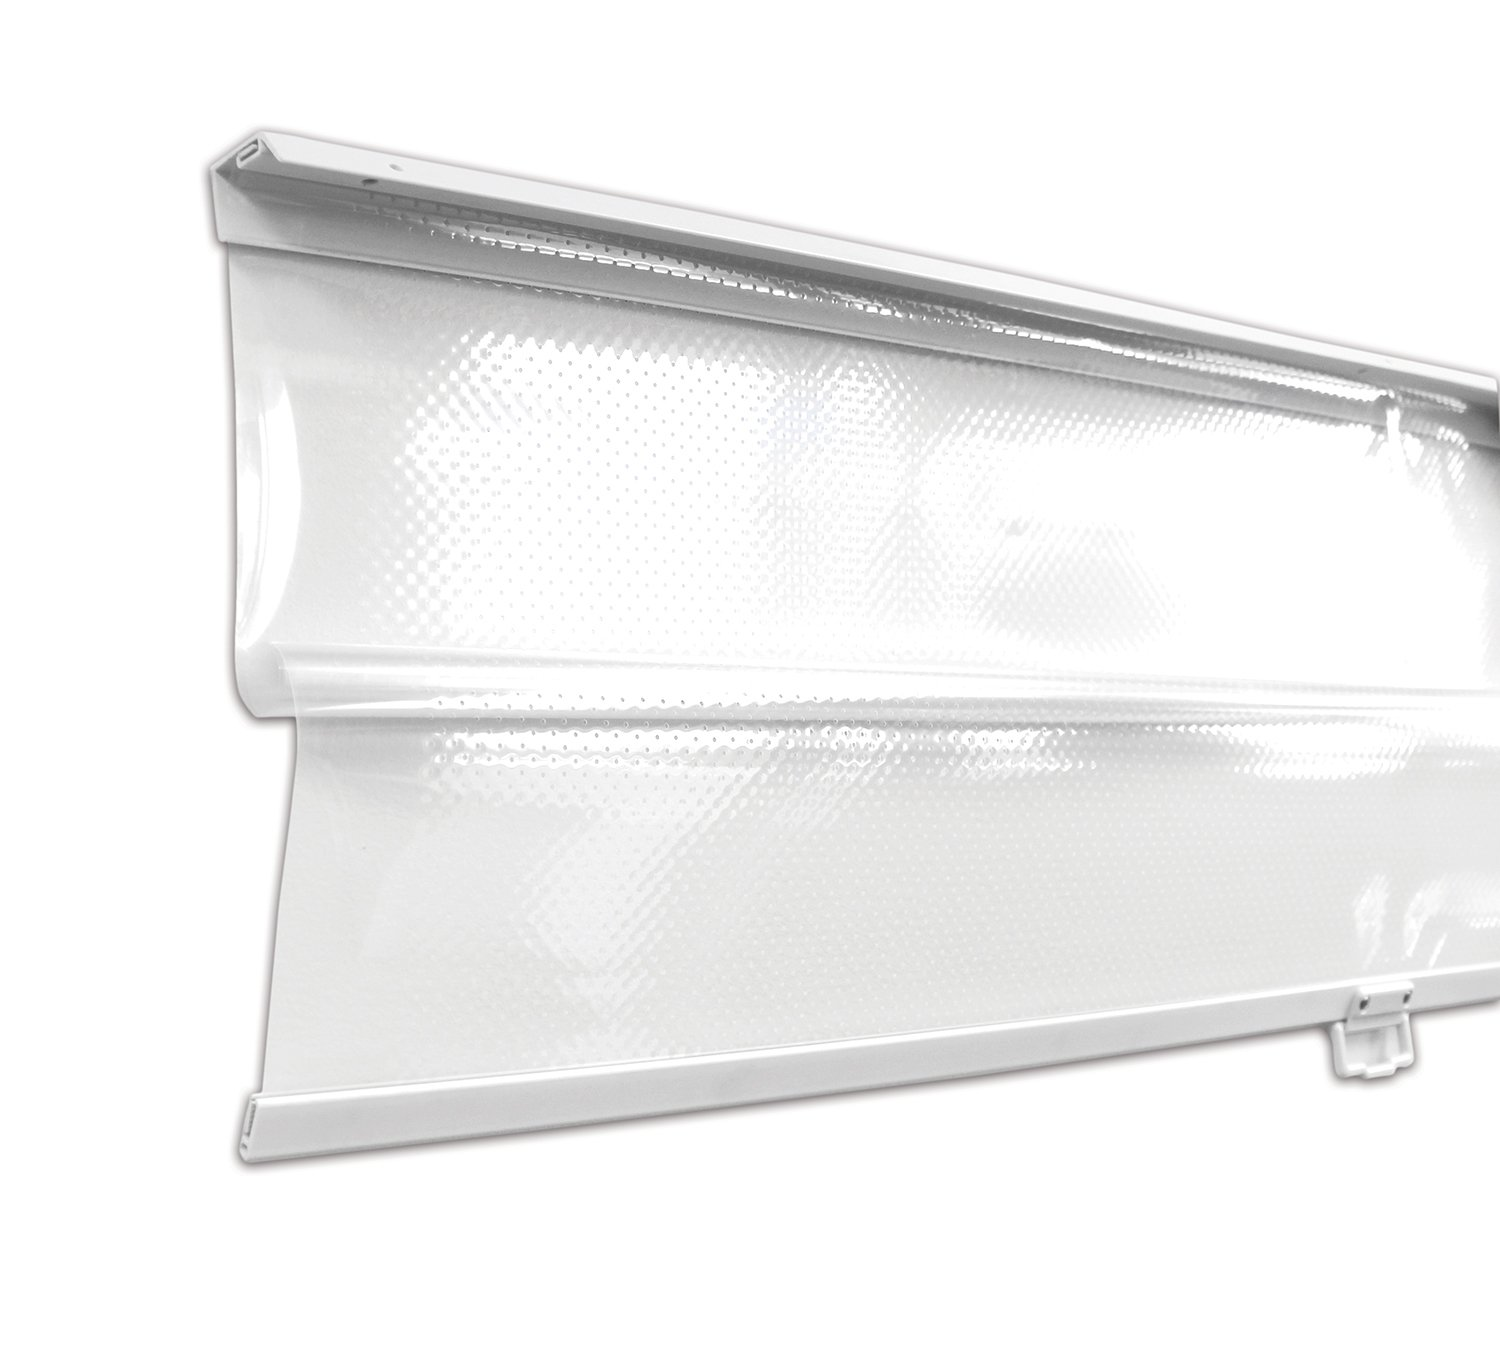 Eliason Double-Action Econo Cover (Night Shade for Open Refrigerator), Clear by Eliason (Image #2)